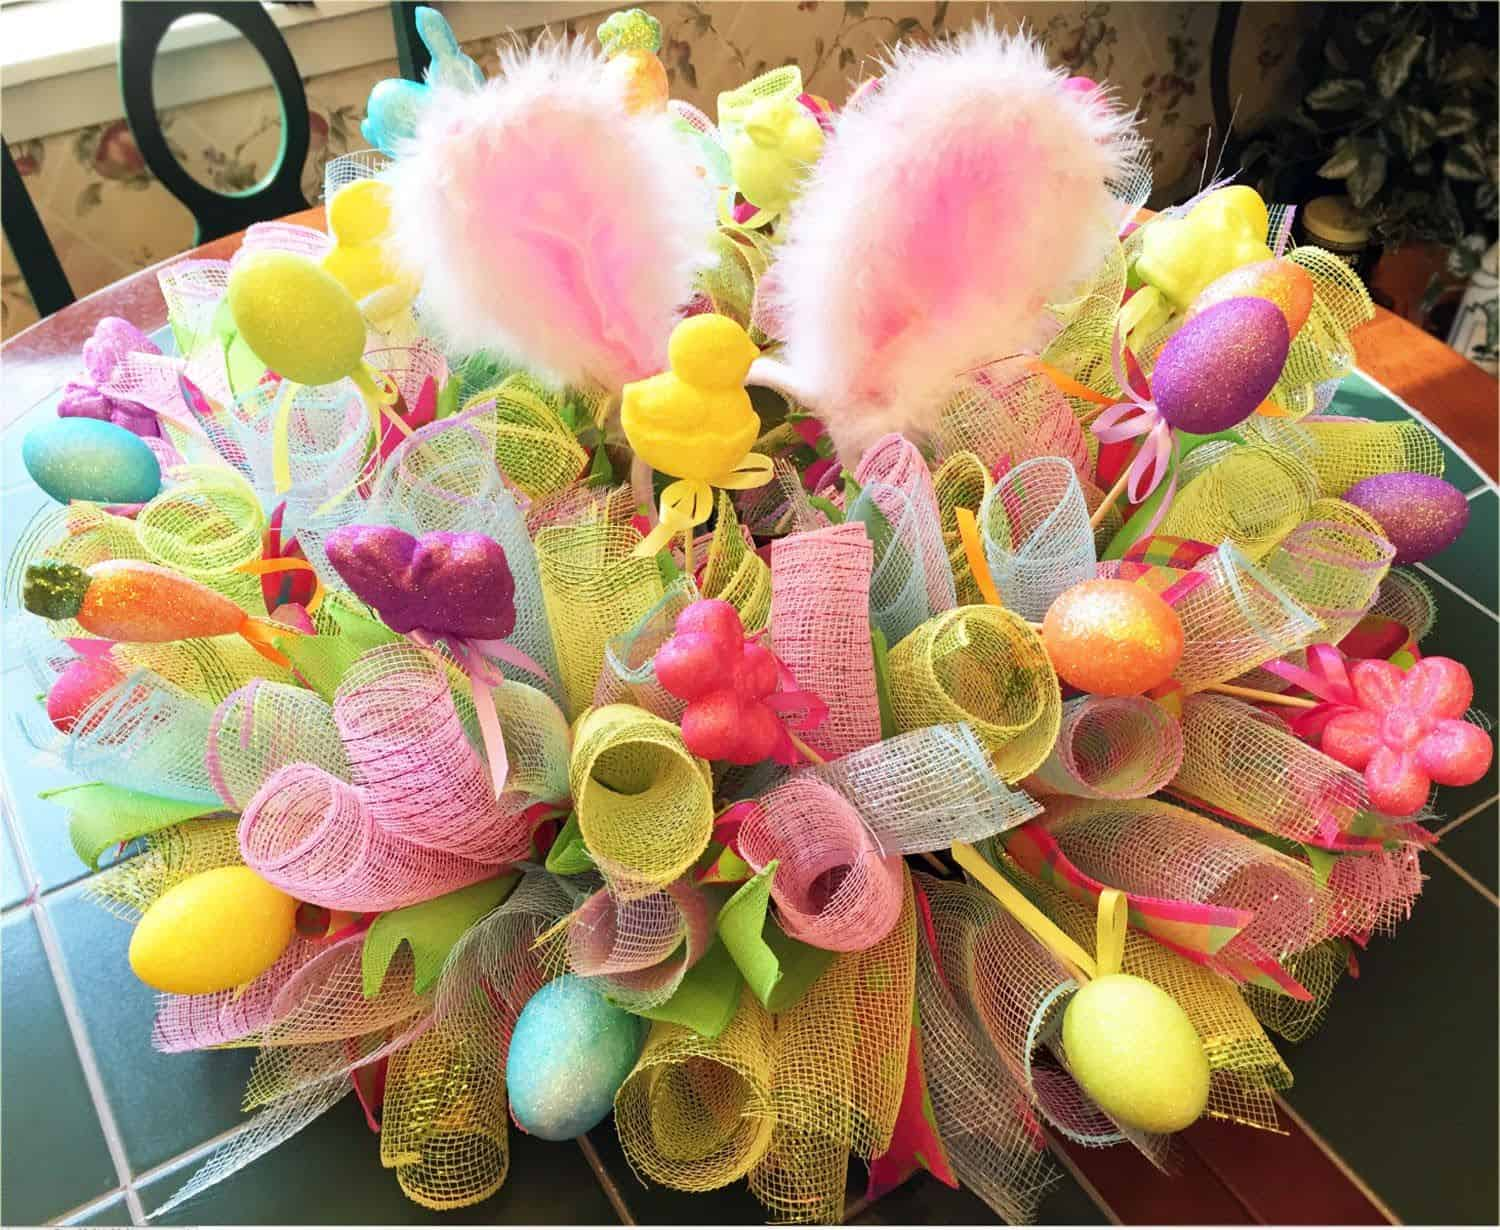 Ribbon and bunny ear centrepiece